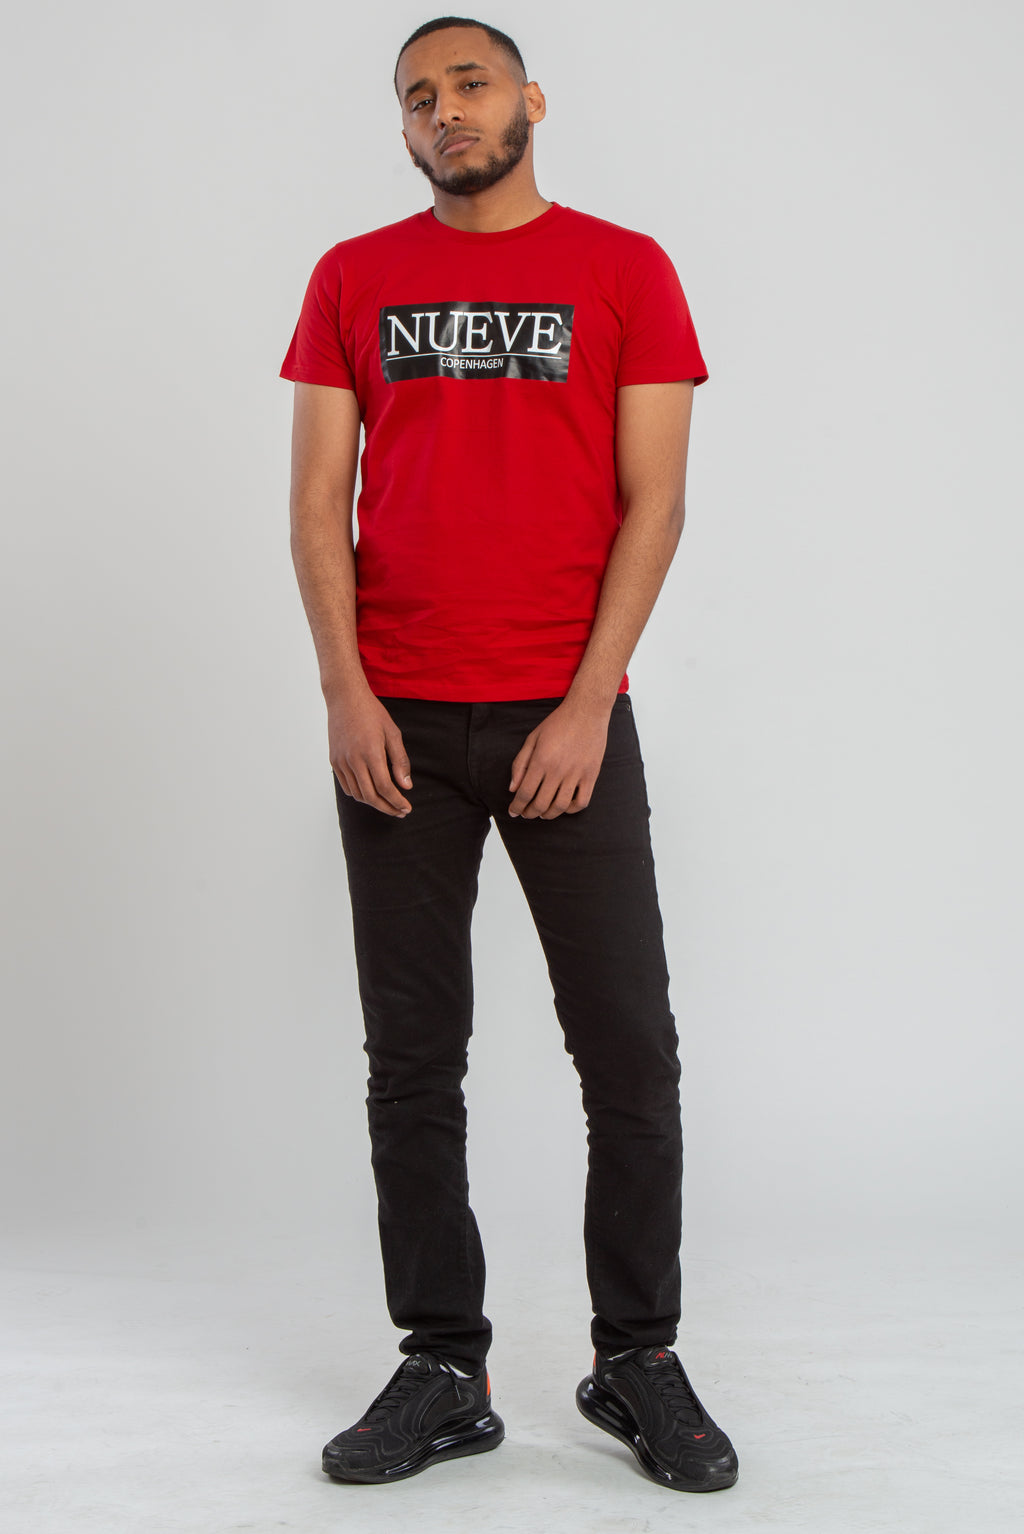 NUEVE COPENHAGEN RED T-SHIRT